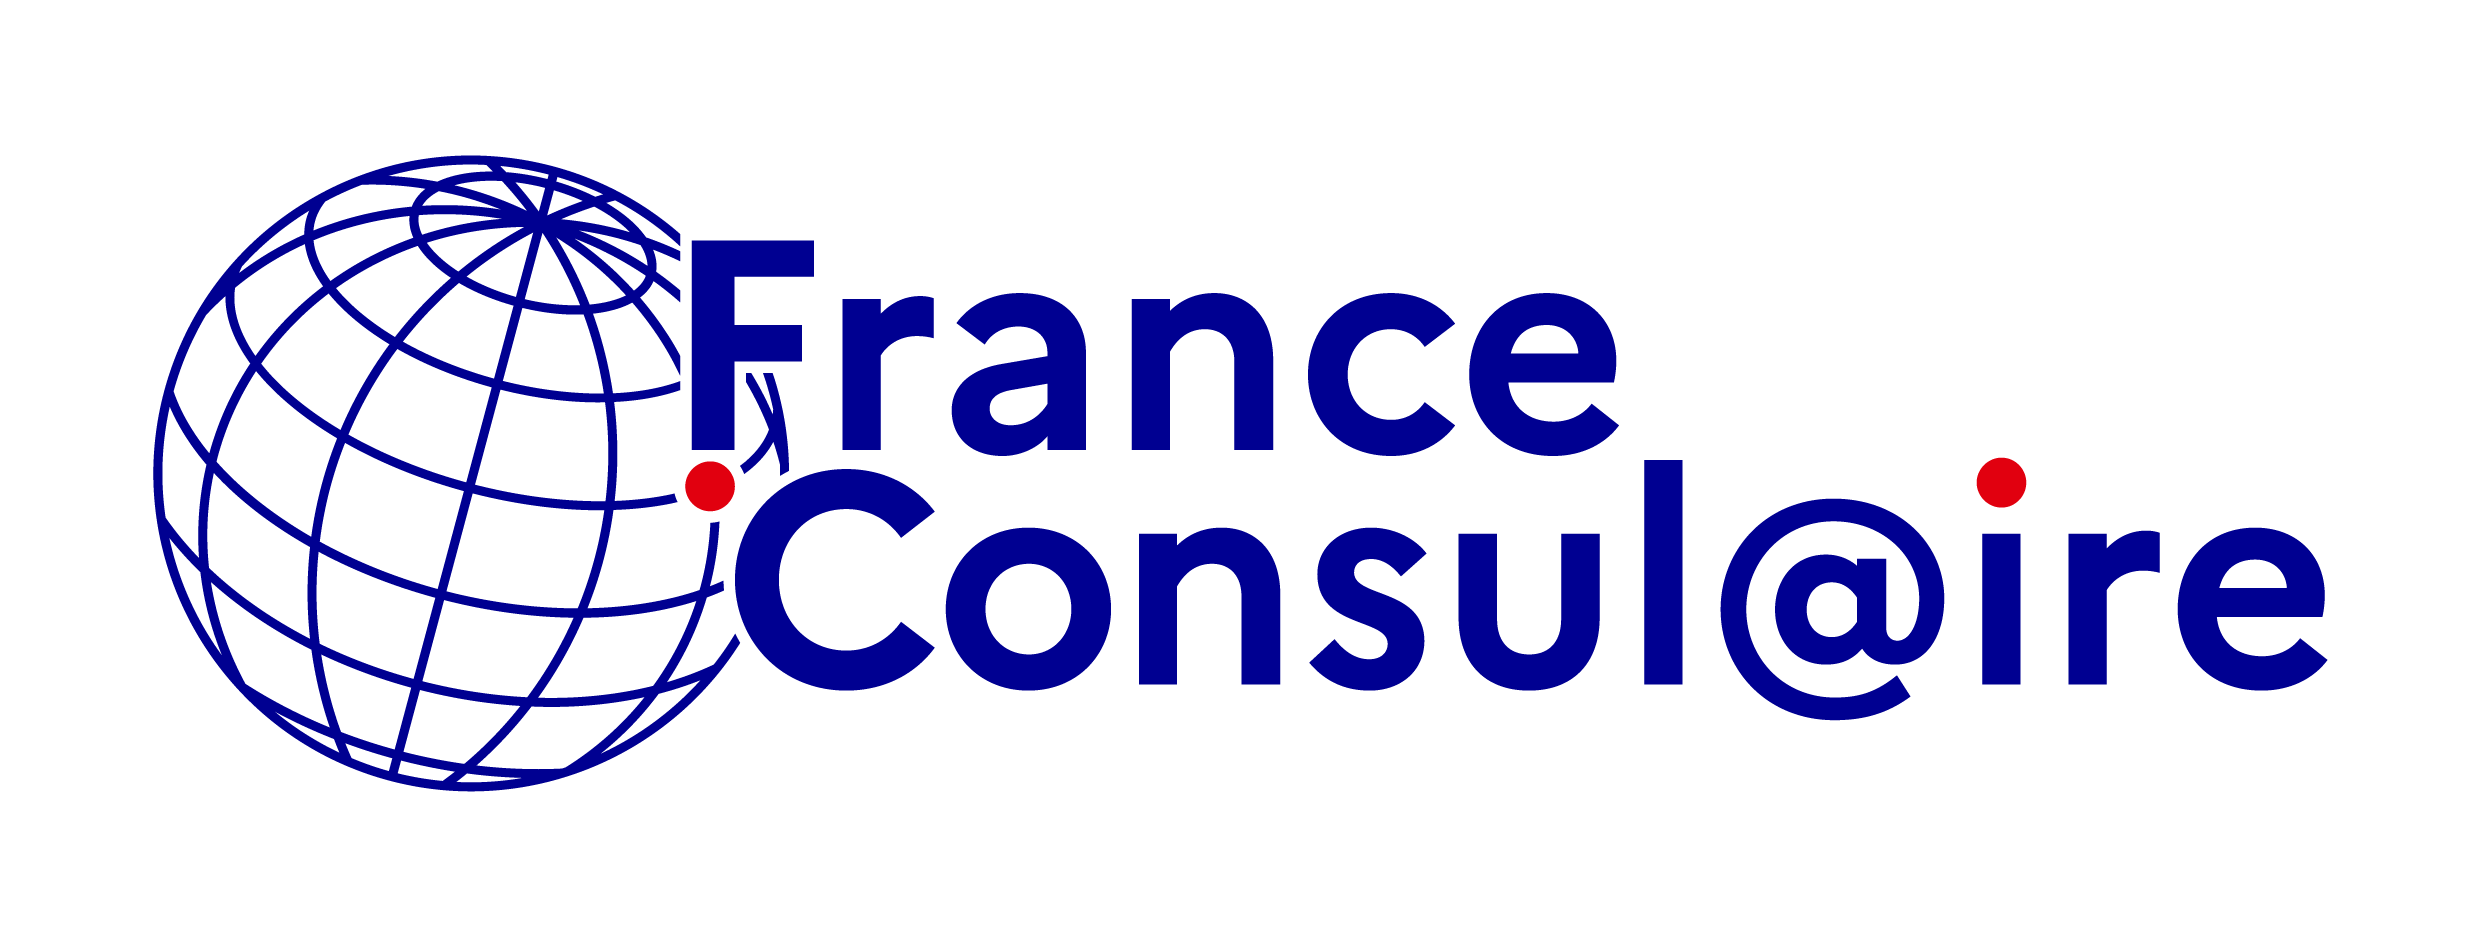 france consulaire